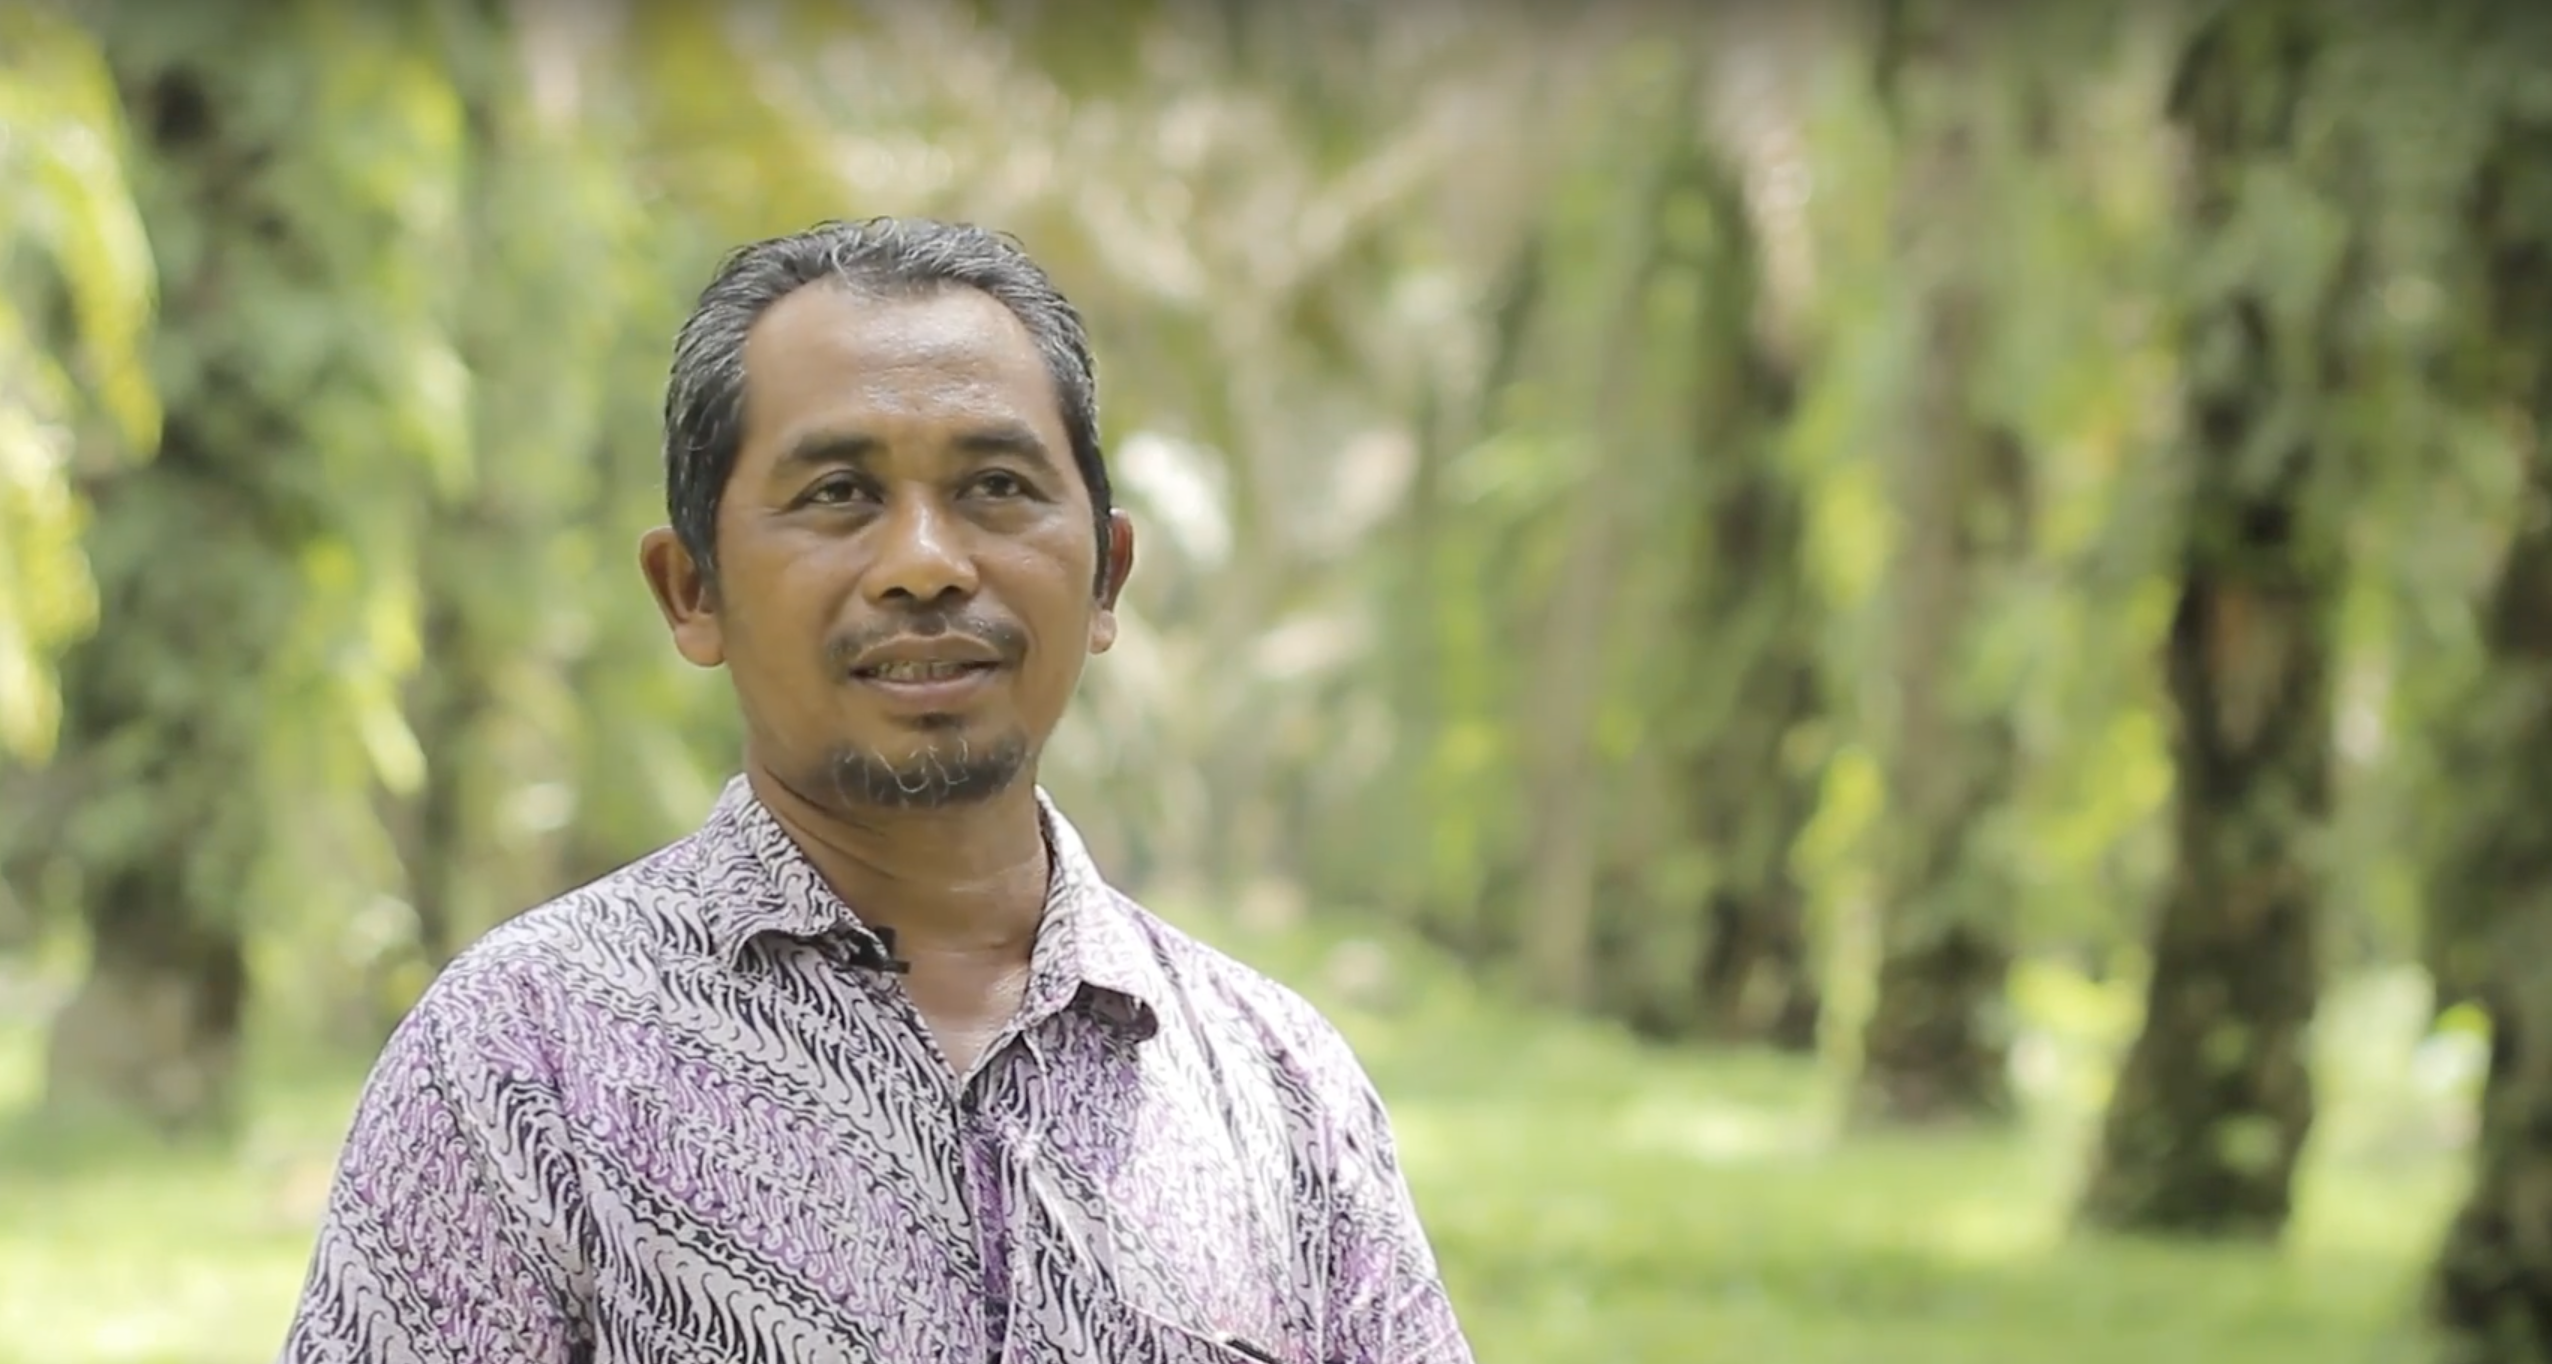 RSPO Credits put dreams within reach